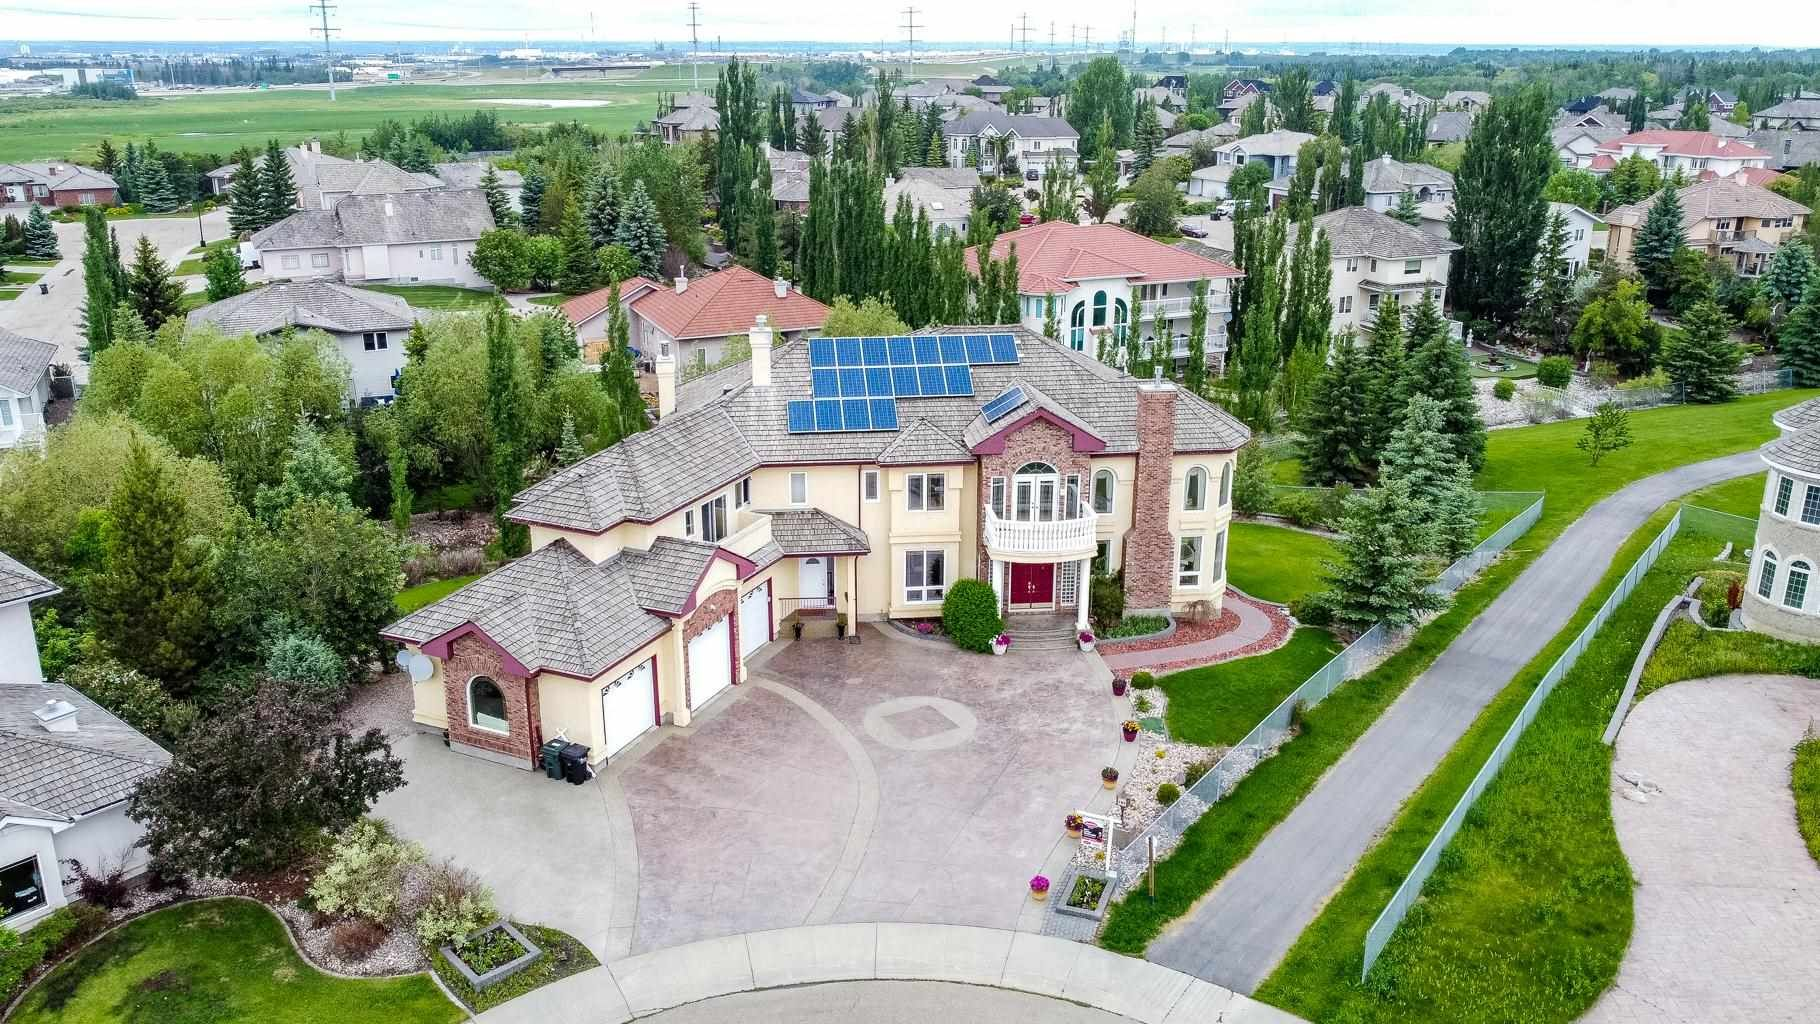 Main Photo: 107 52304 RGE RD 233: Rural Strathcona County House for sale : MLS®# E4250543